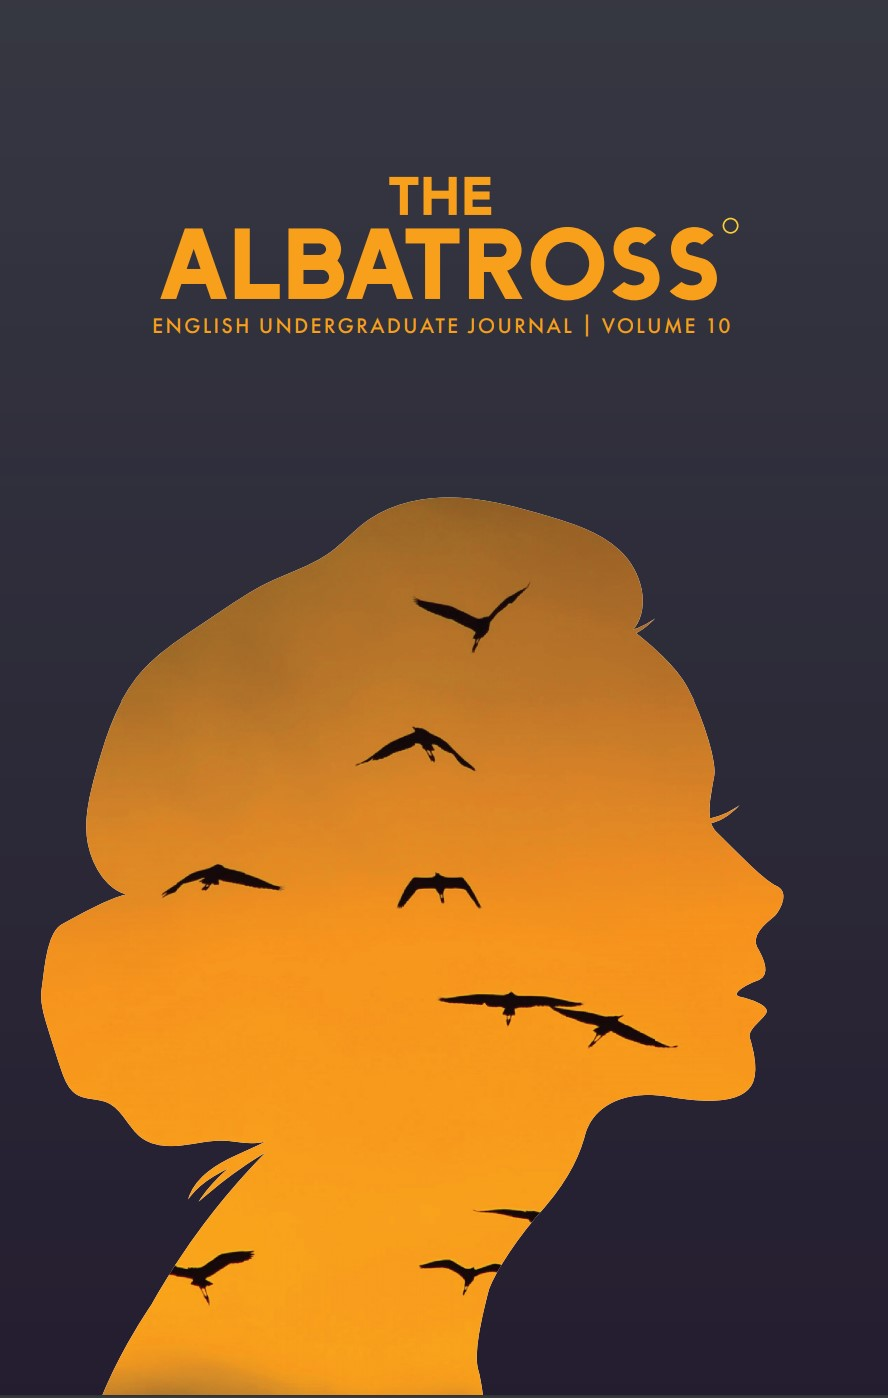 Albatross Volume 10 cover featuring the title and a silhouette of a woman's head with birds flying across an orange backdrop.